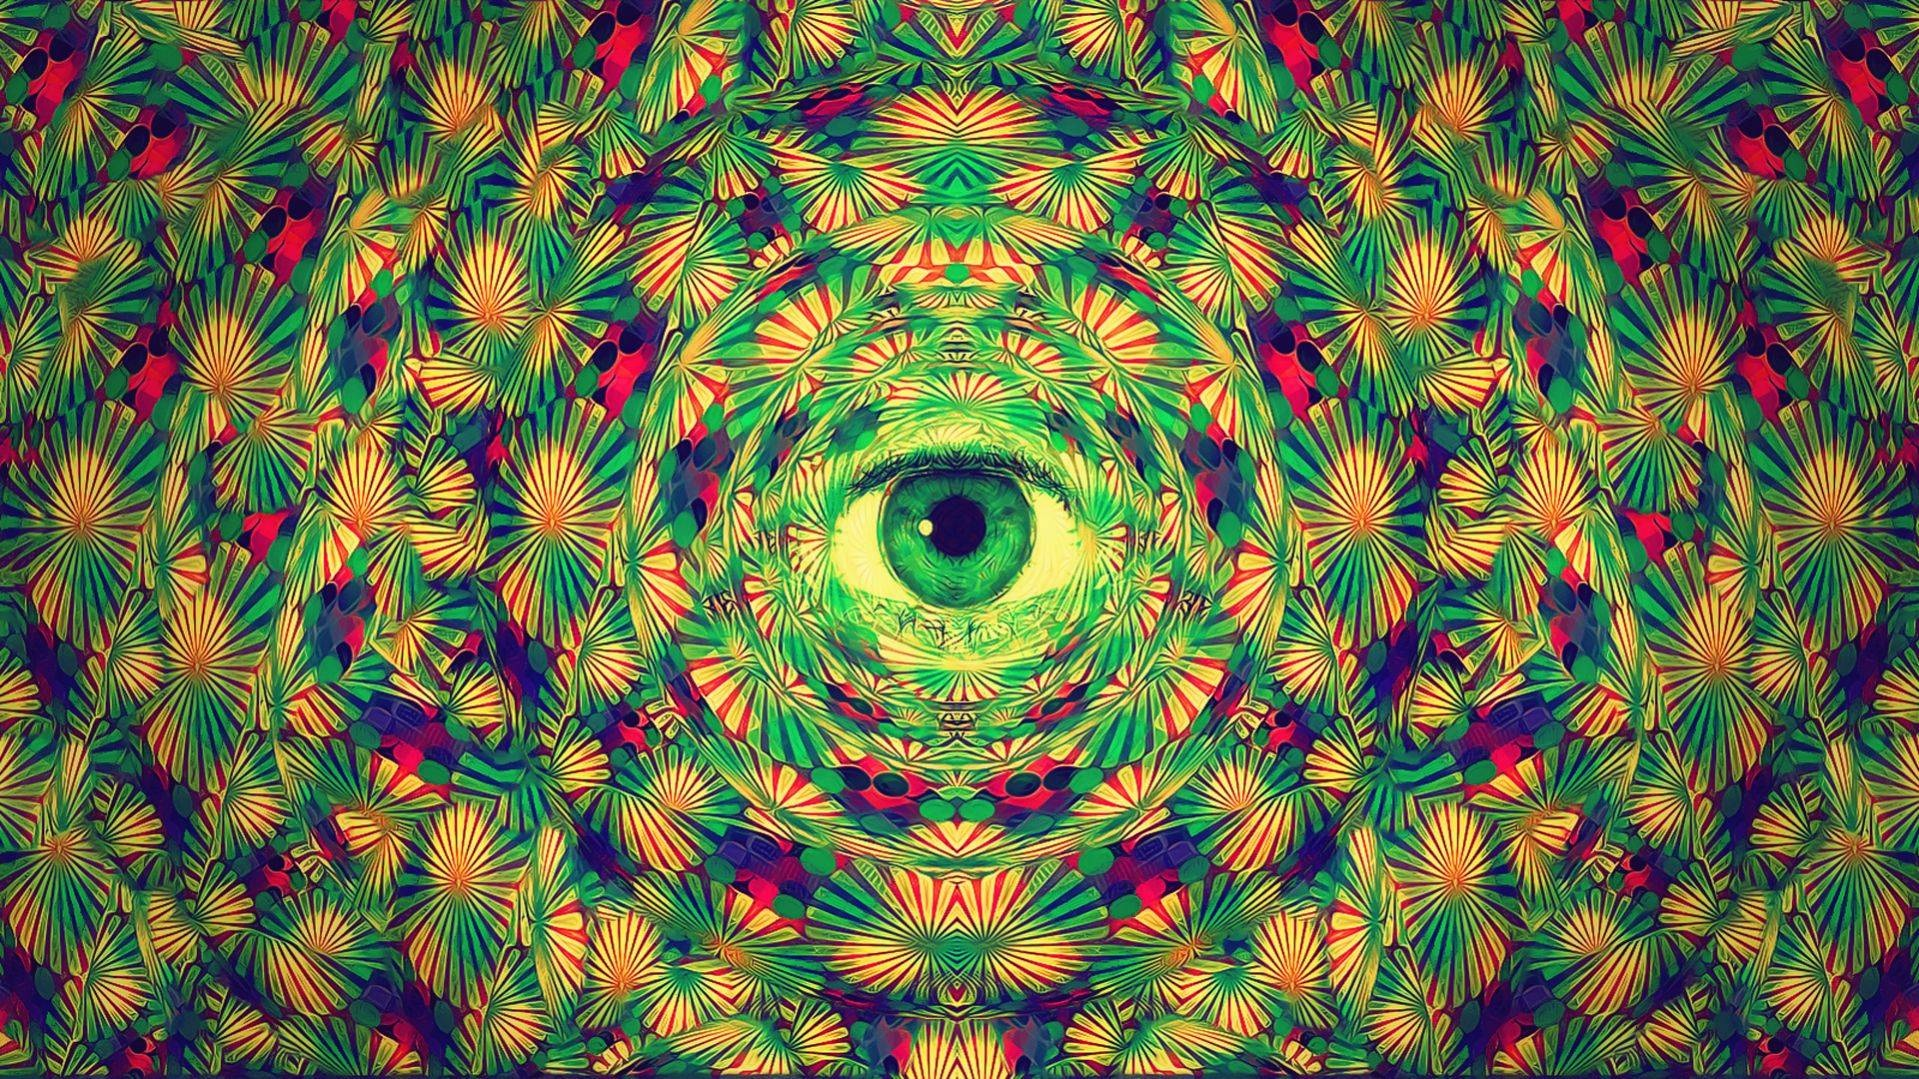 trippy wallpaper images pictures becuo